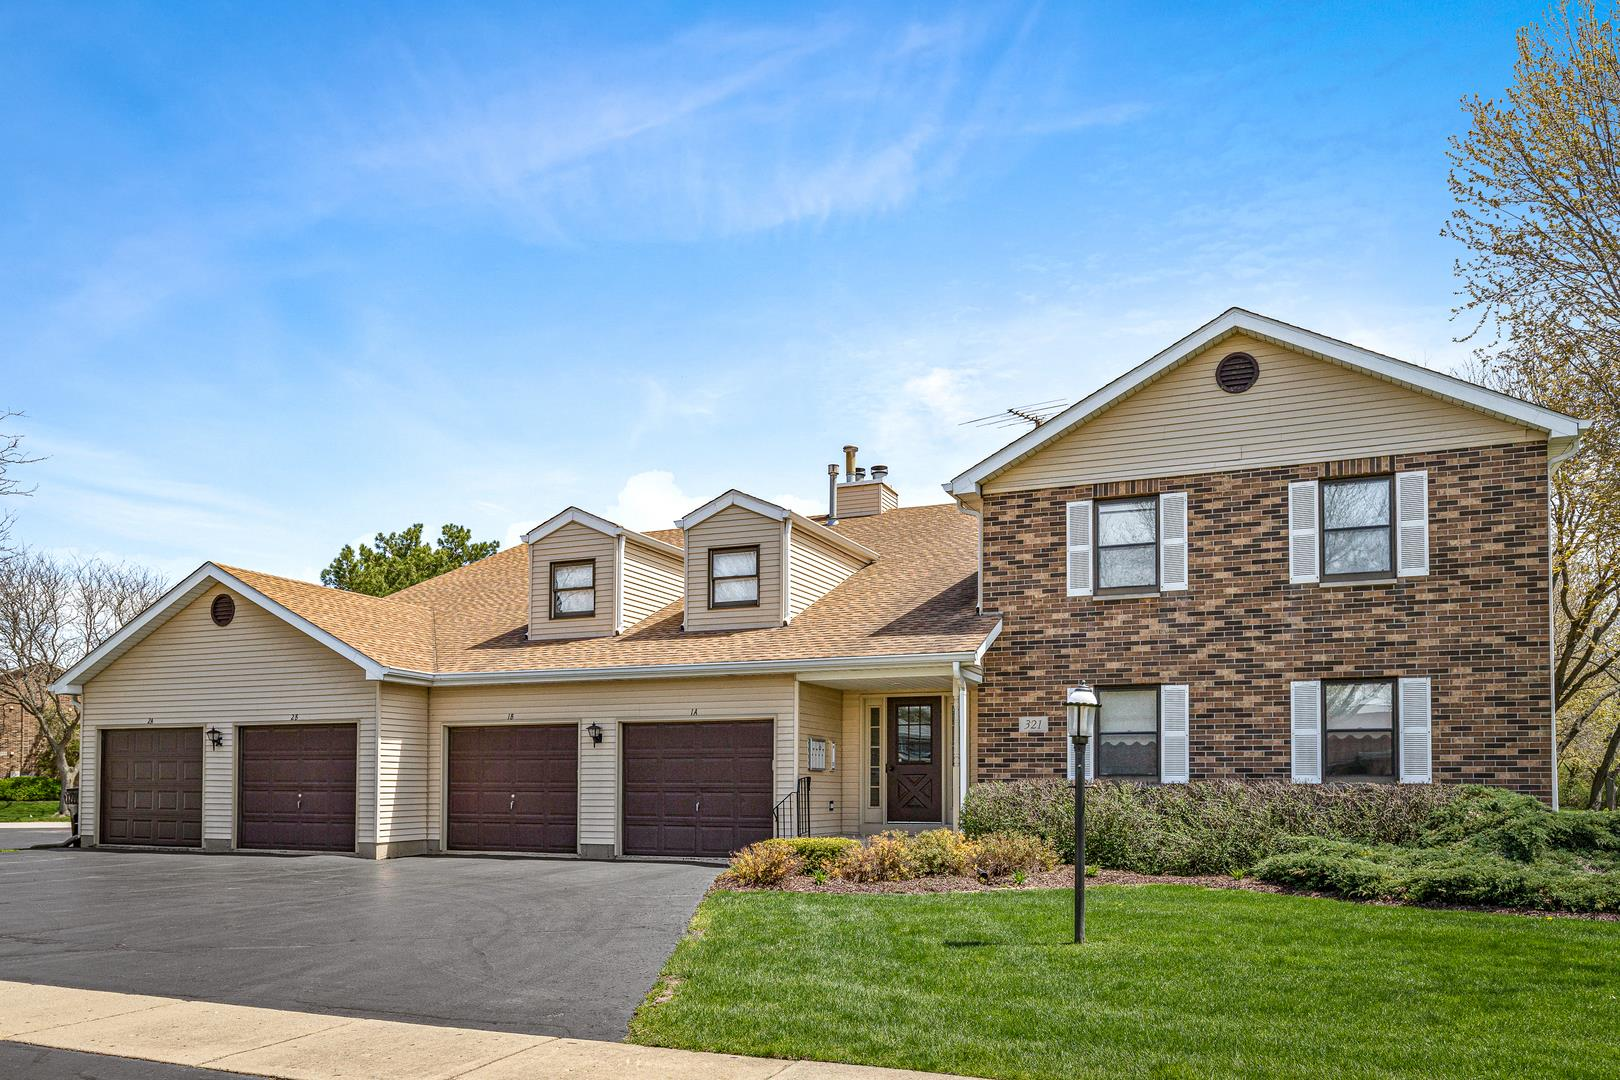 321 Everett Avenue #2A, Crystal Lake, IL 60014 - #: 10706614